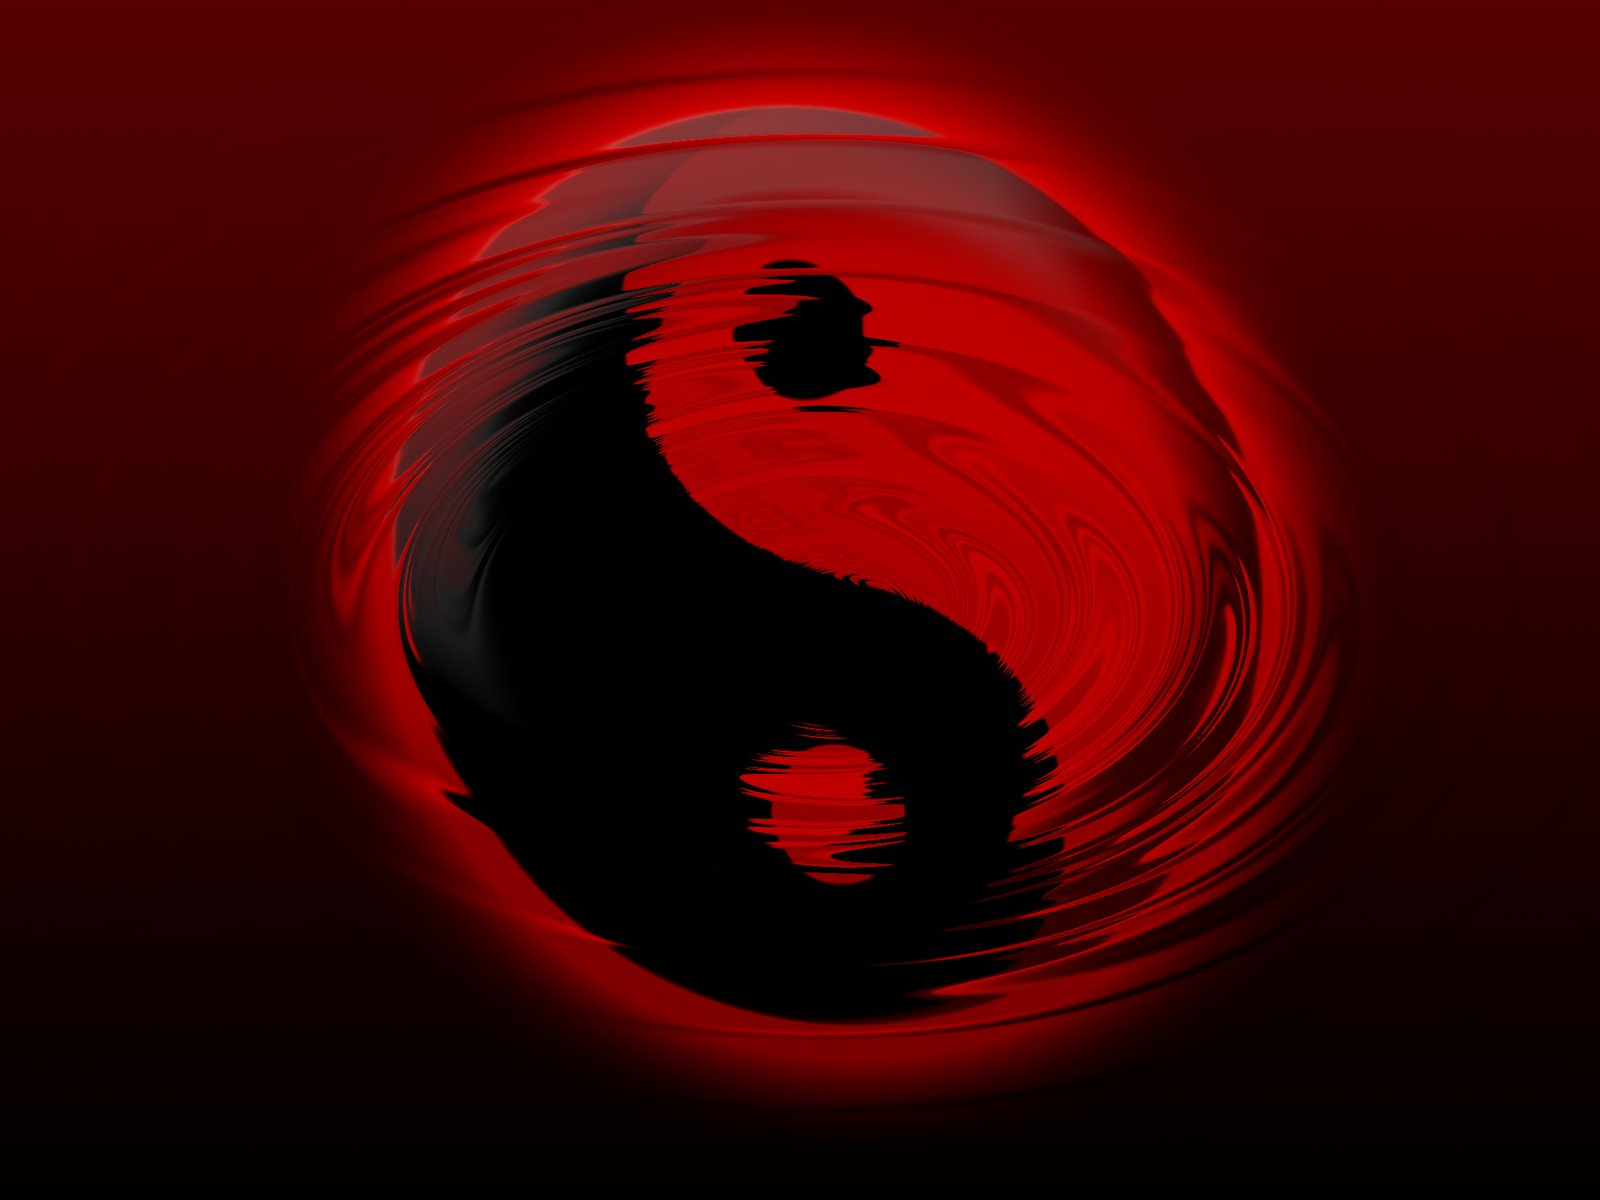 Wallpaper 100 Yin Yang Ripple Red and Black Wallpapers 1600x1200